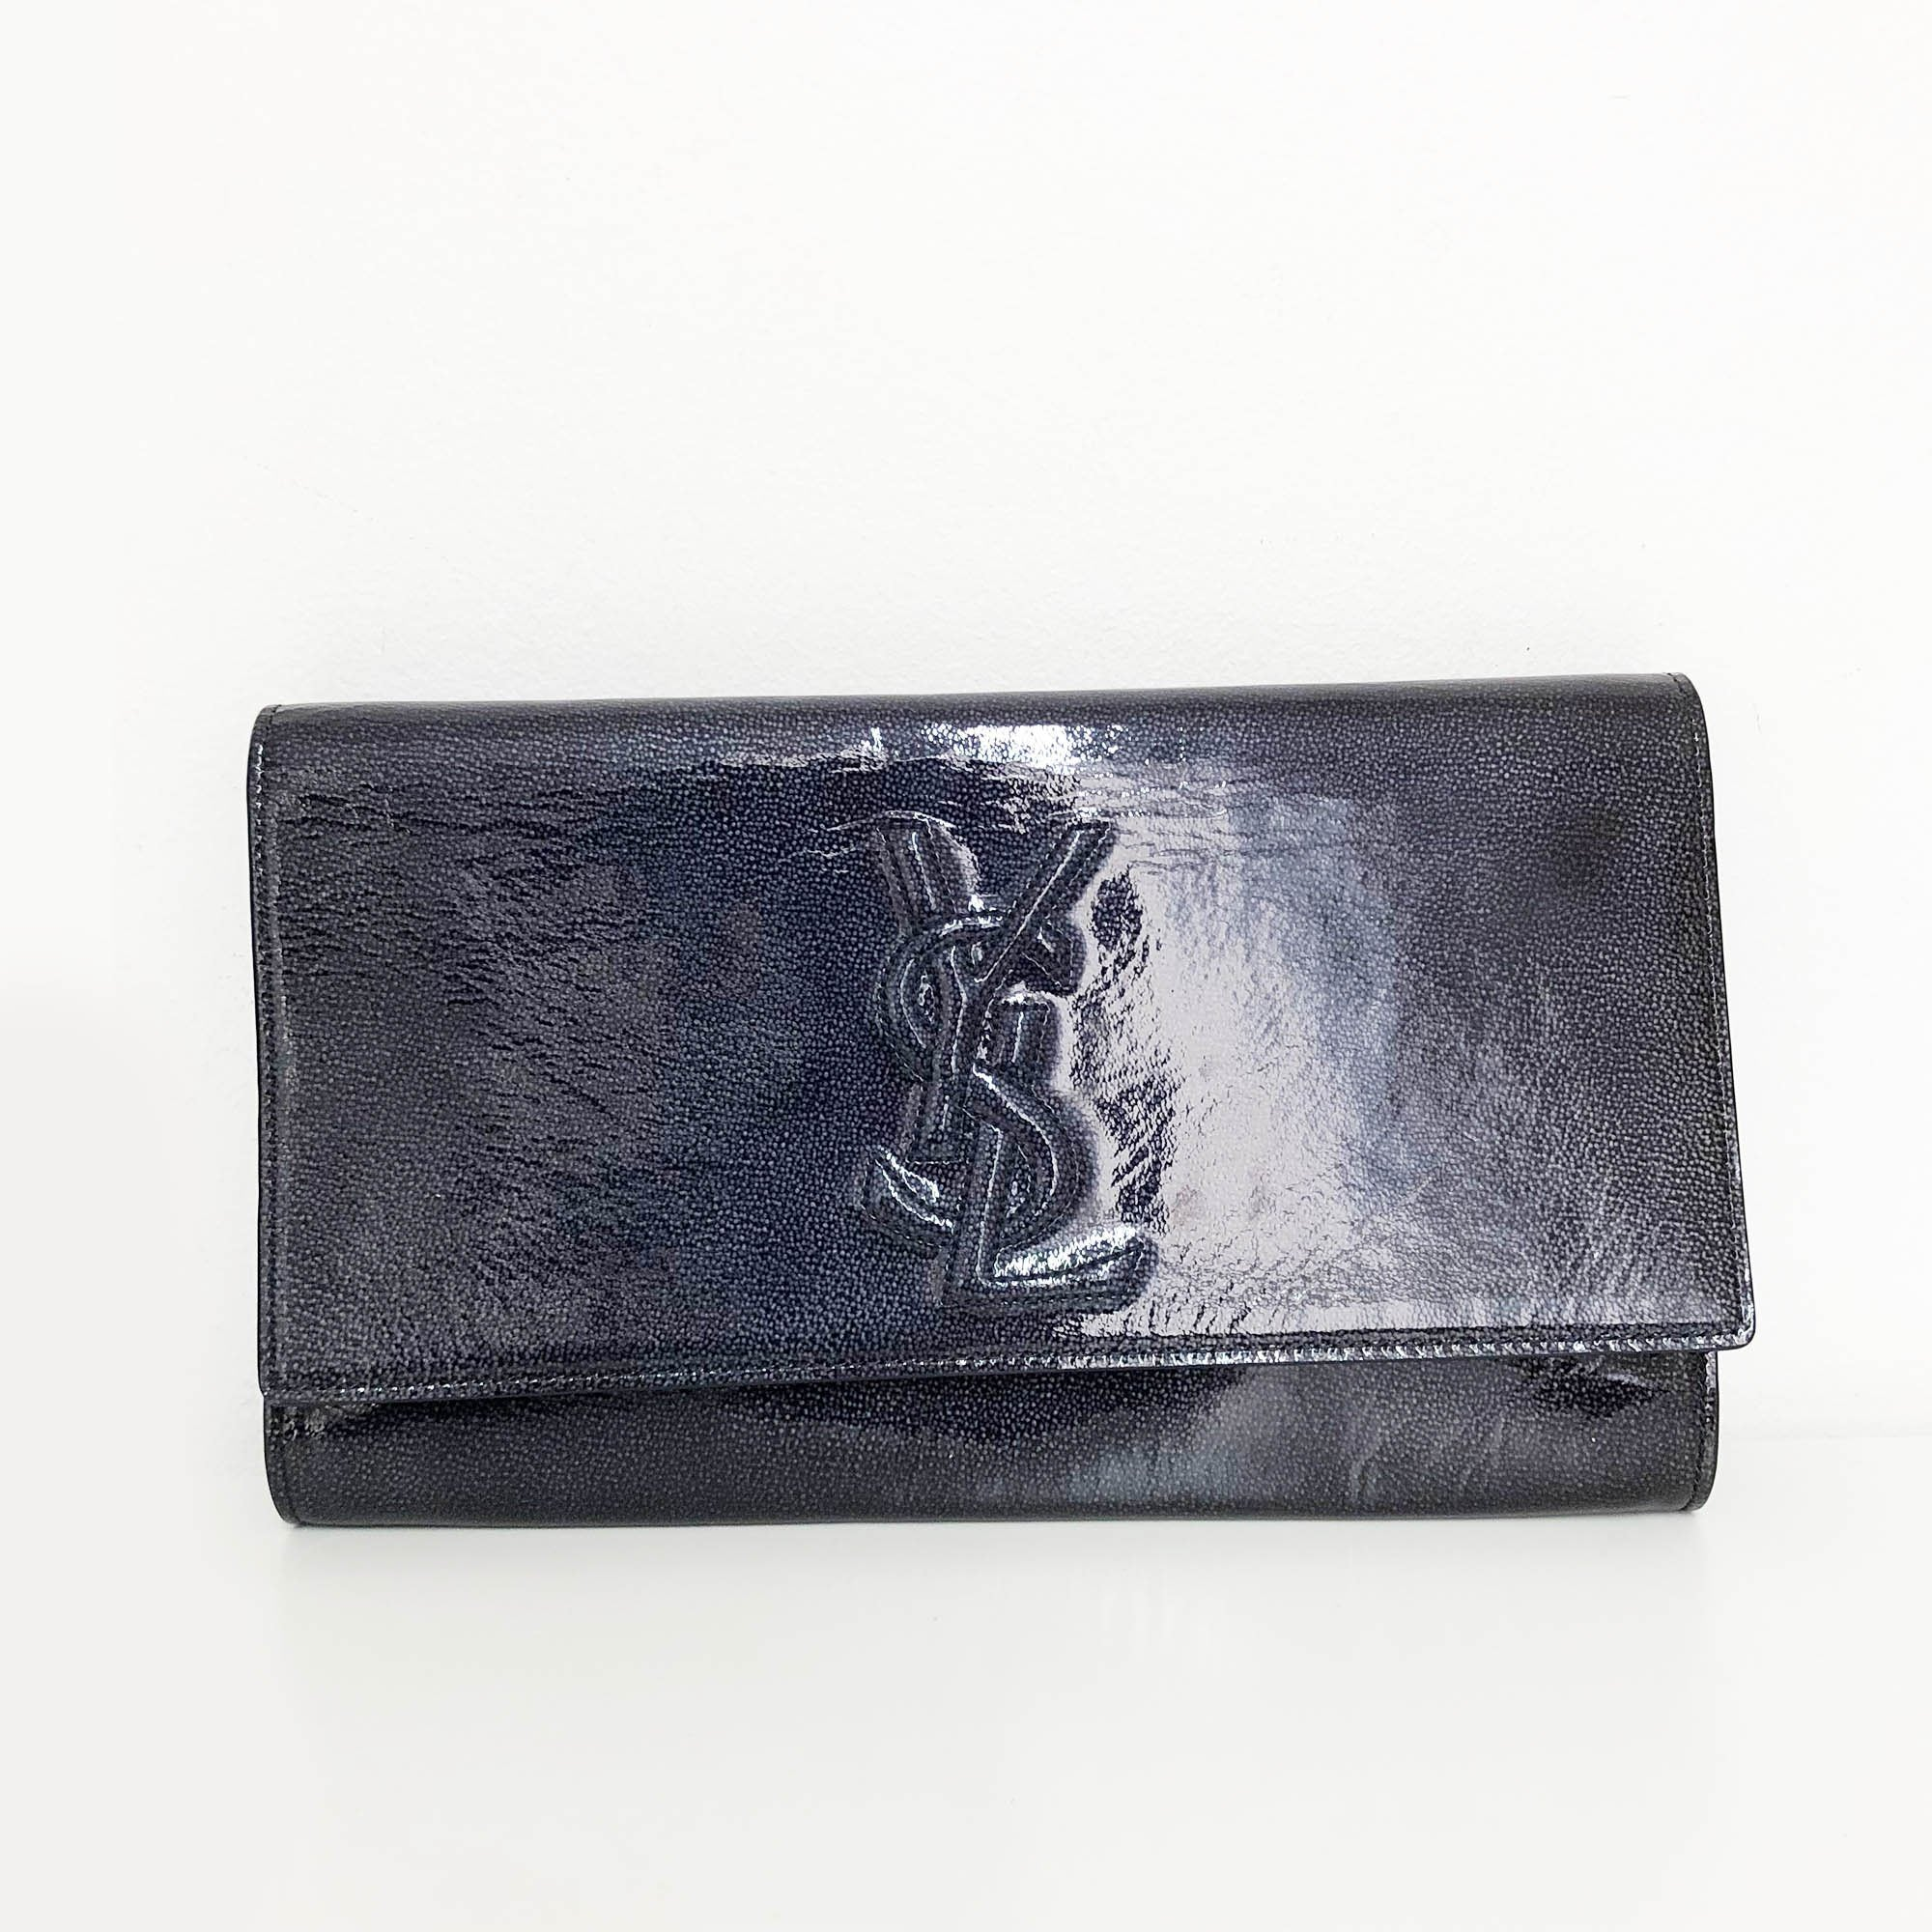 Yves Saint Laurent Printed Patent Leather Belle De Jour Flap Clutch